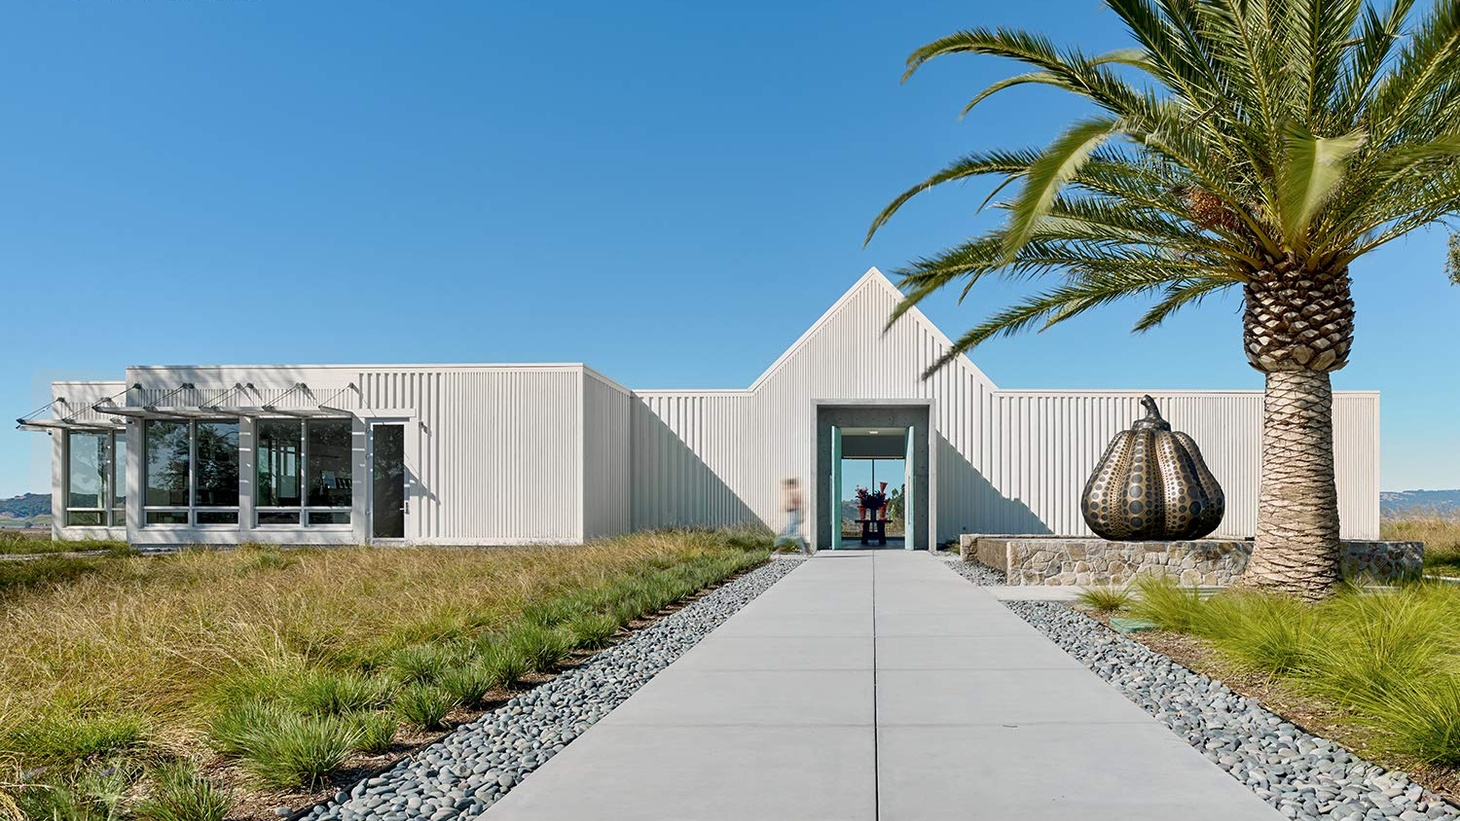 In her book, The New Architecture of Wine, author Heather Hebert features 25 wineries whose architecture celebrates California wine making and tasting.